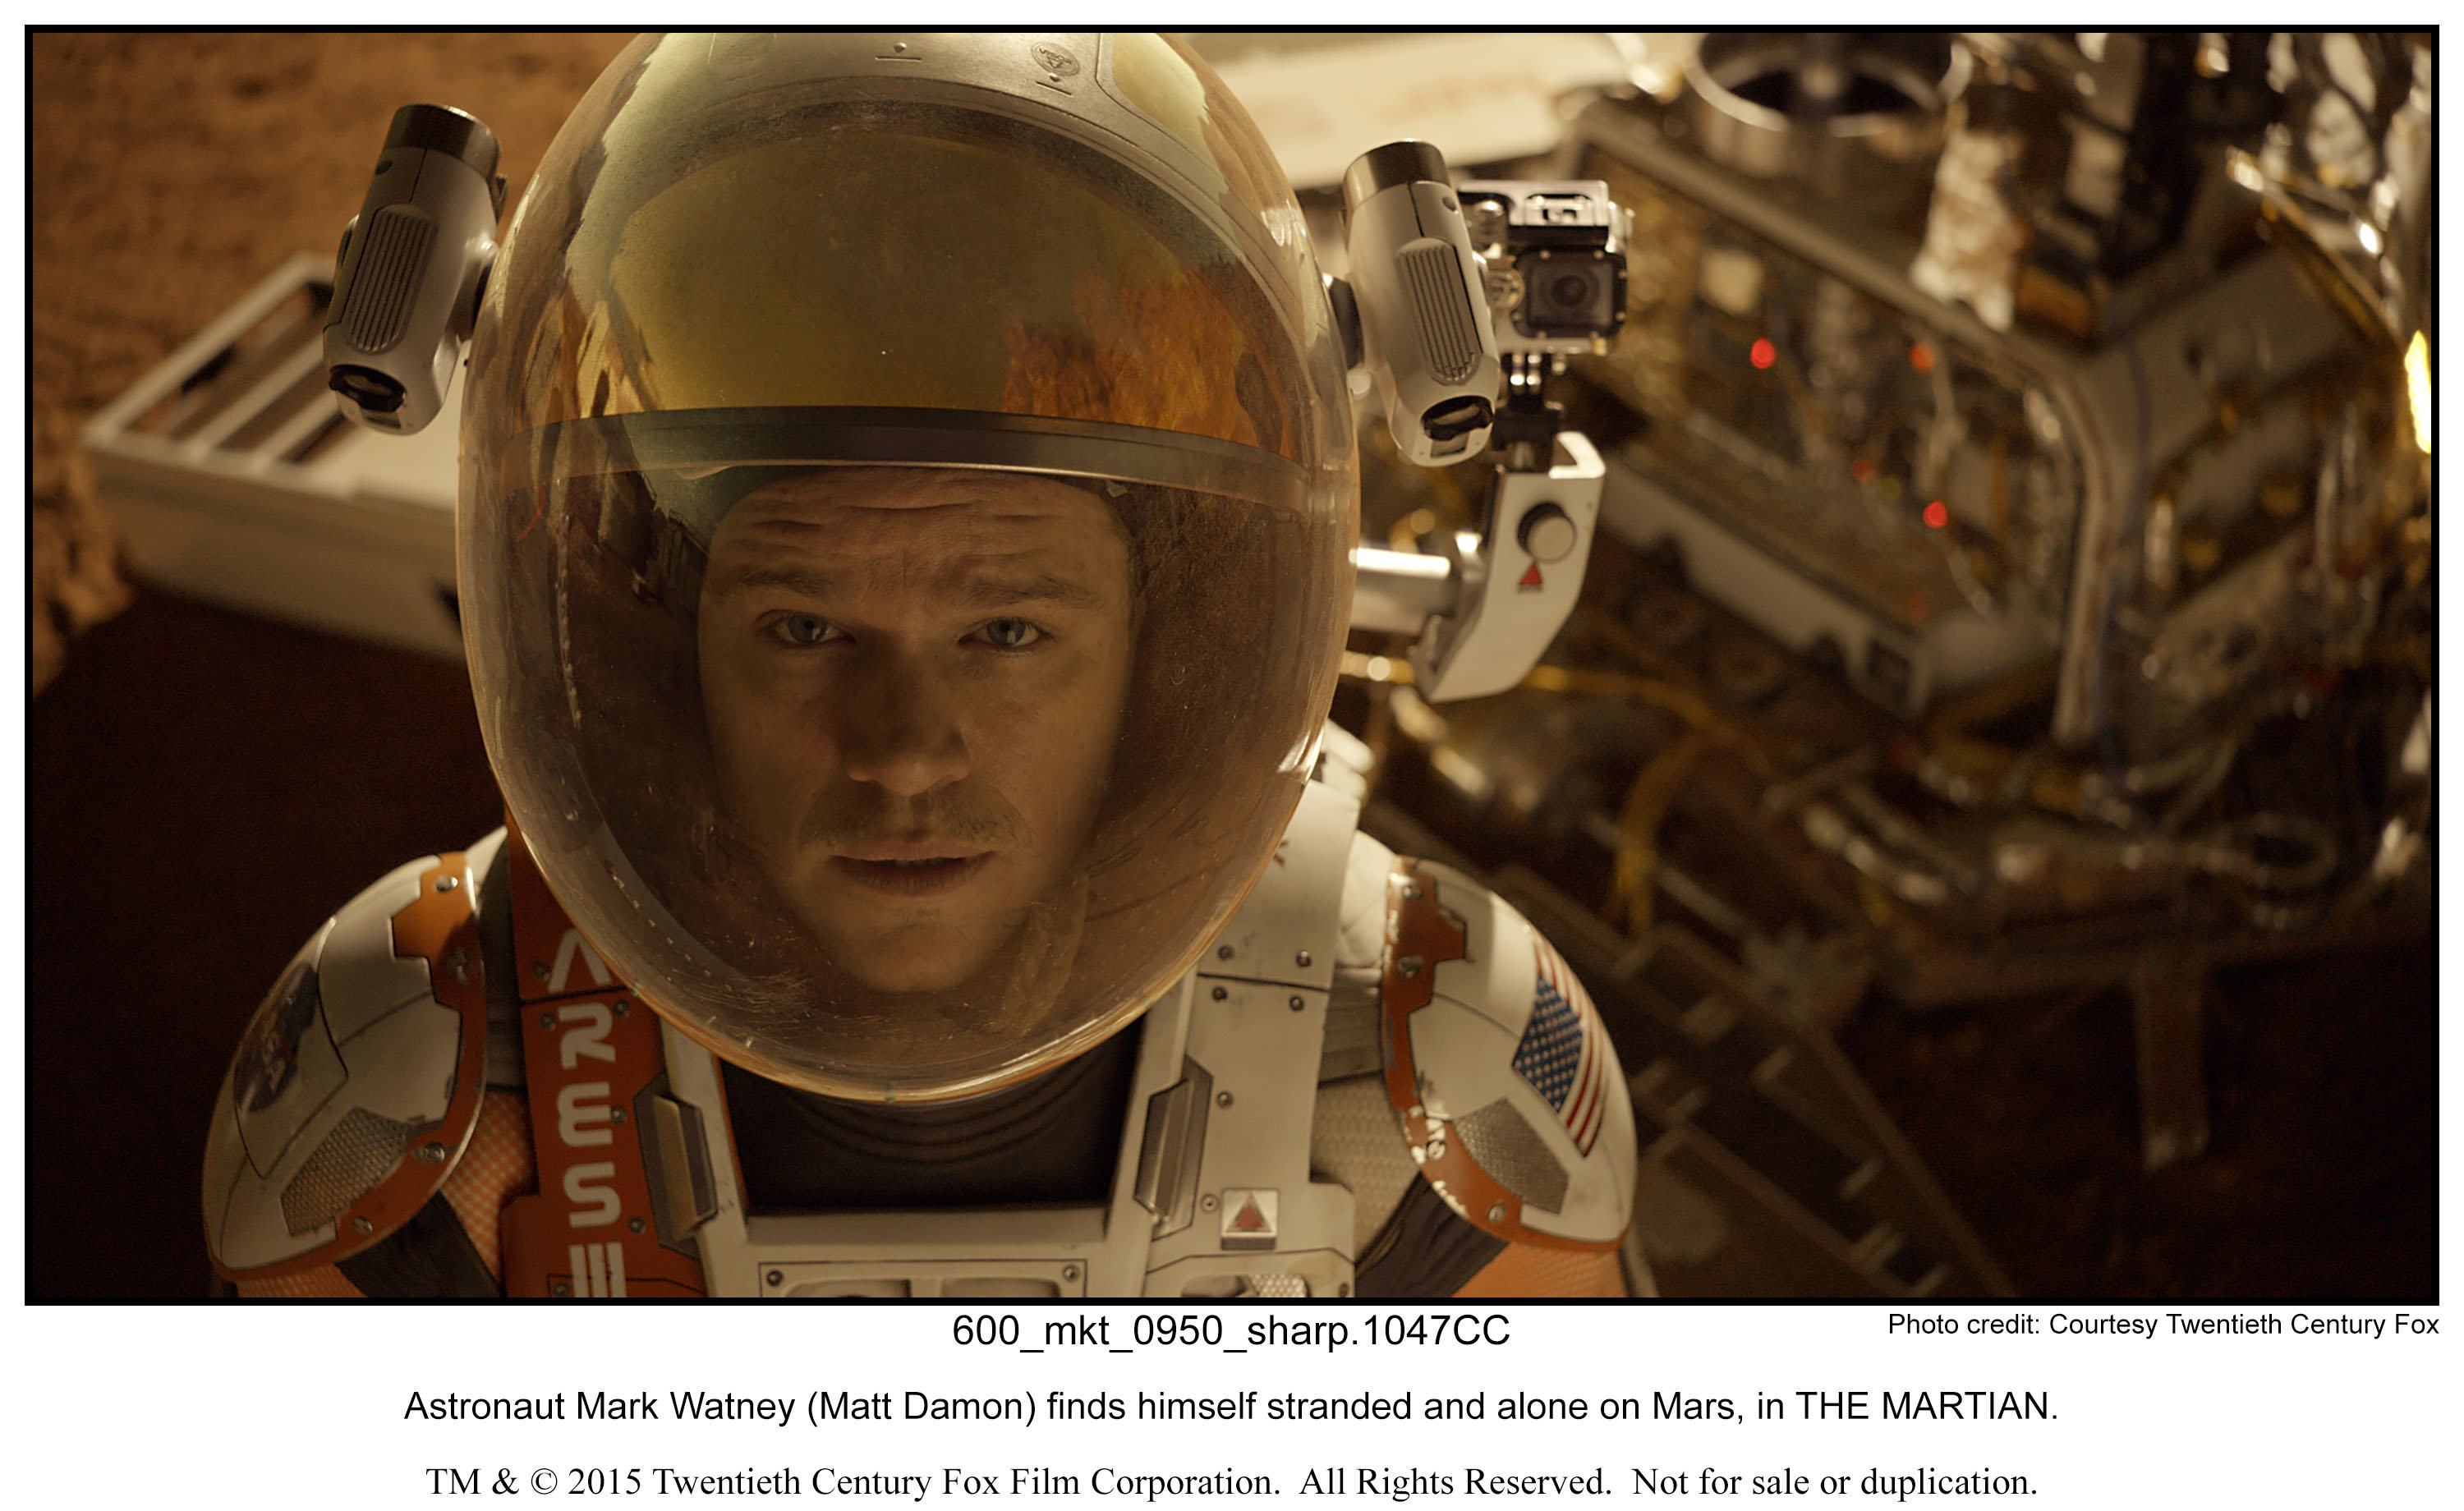 Astronaut Mark Watney (Matt Damon) finds himself stranded and alone on Mars, in THE MARTIAN.